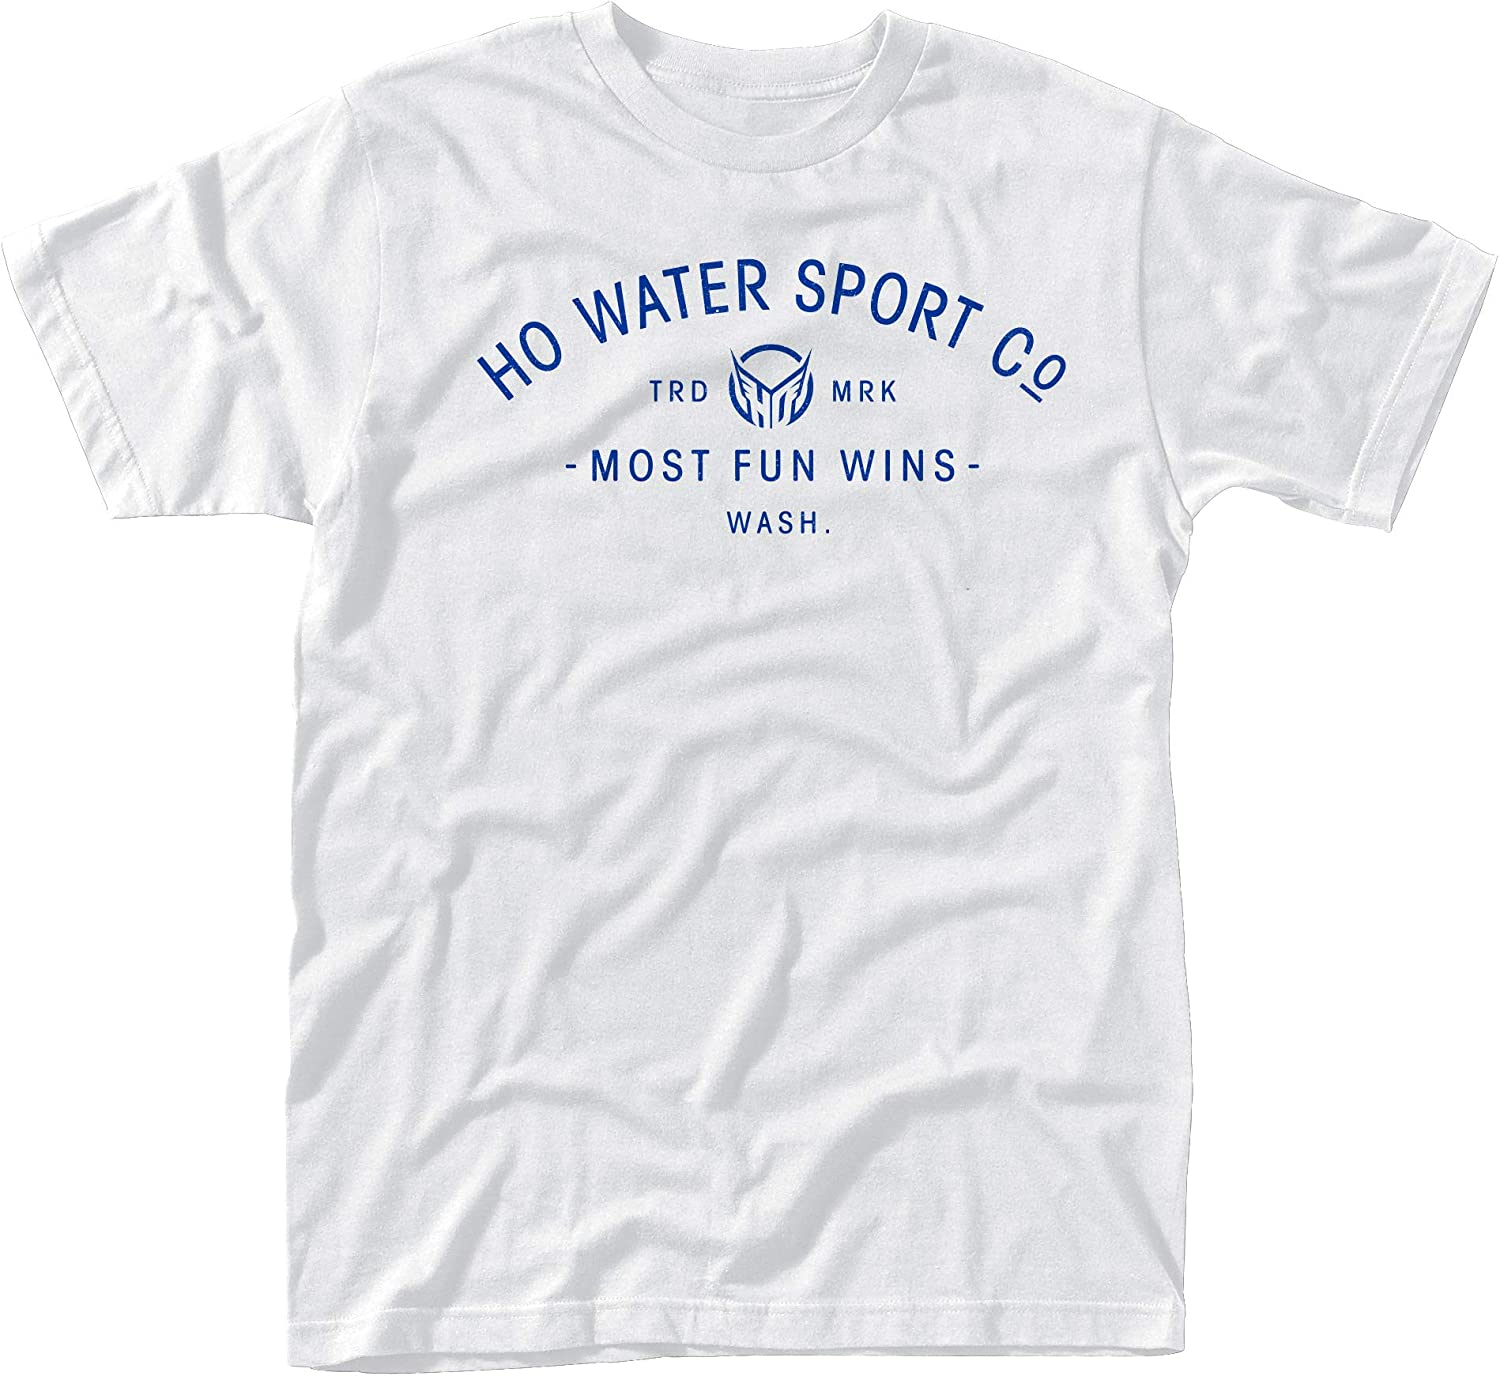 HO Sports Stacked T-Shirt White Denver Mall Large Sale item Medium Small XL